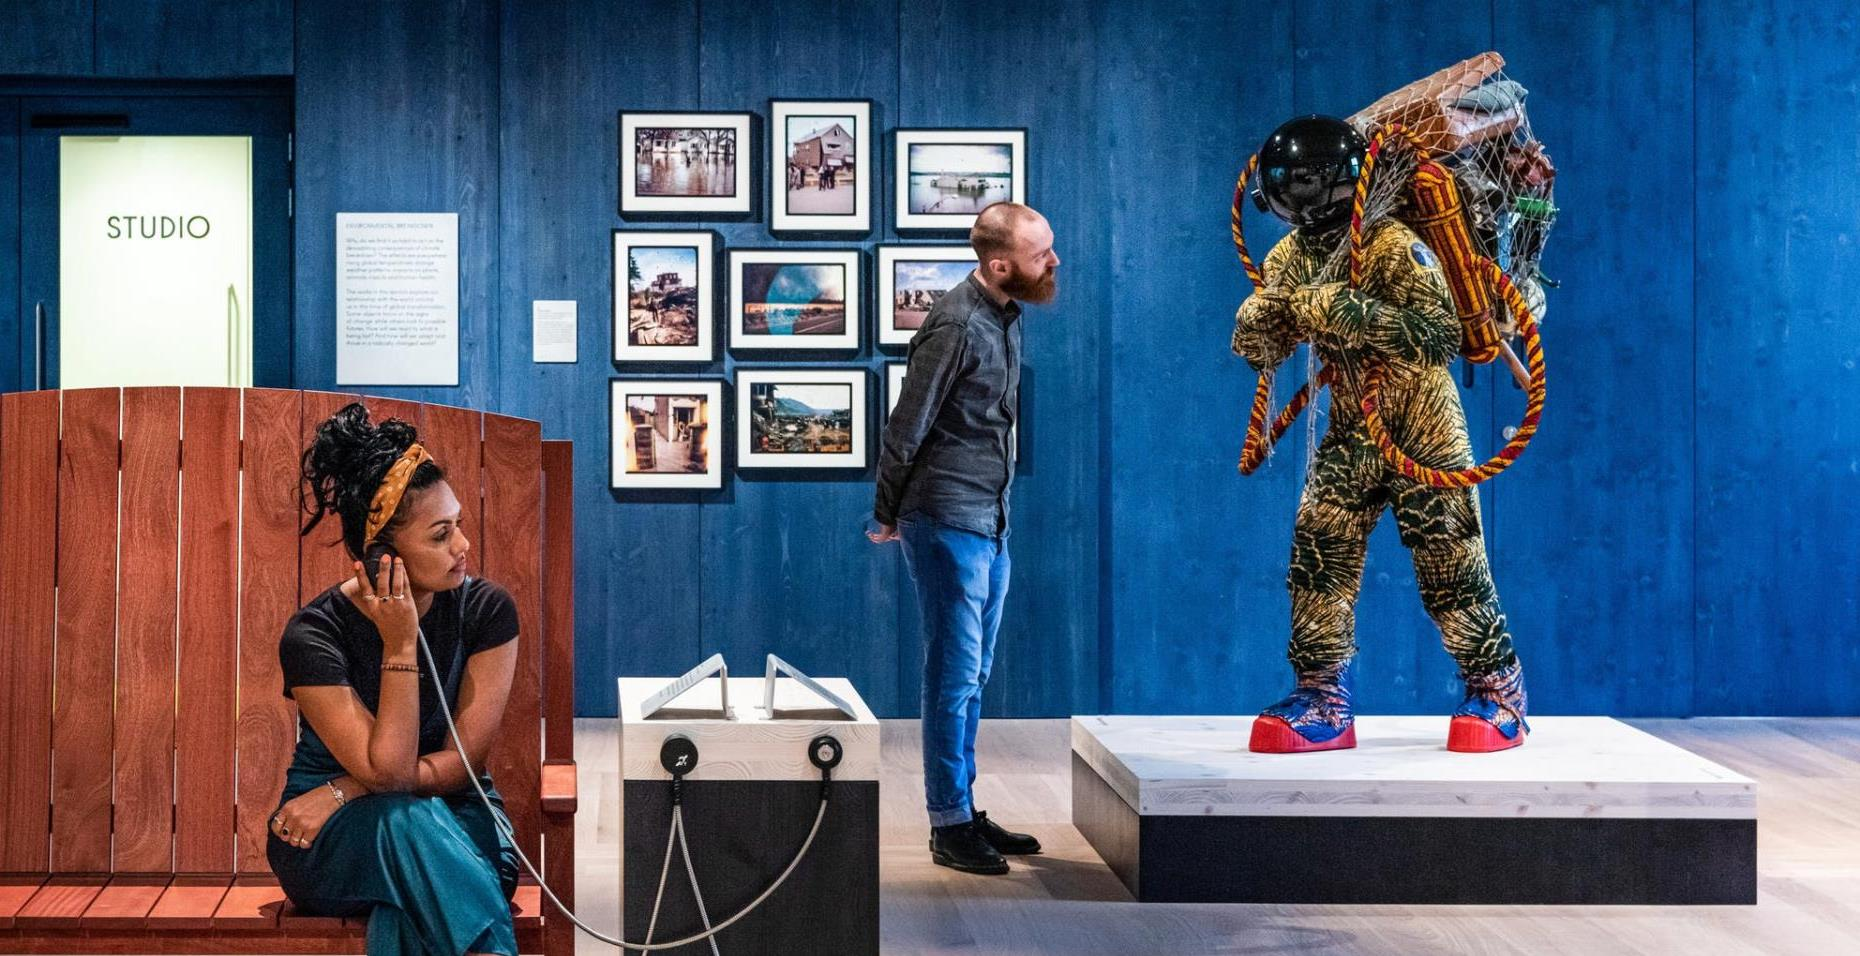 Photograph of Being Human gallery, with a blue stained wood wall in the background, in front of which a young man looks at a life-size artwork of a figure resembling an astronaut. In the foreground a young woman sits on a wooden bench holding an audio speaker to her ear